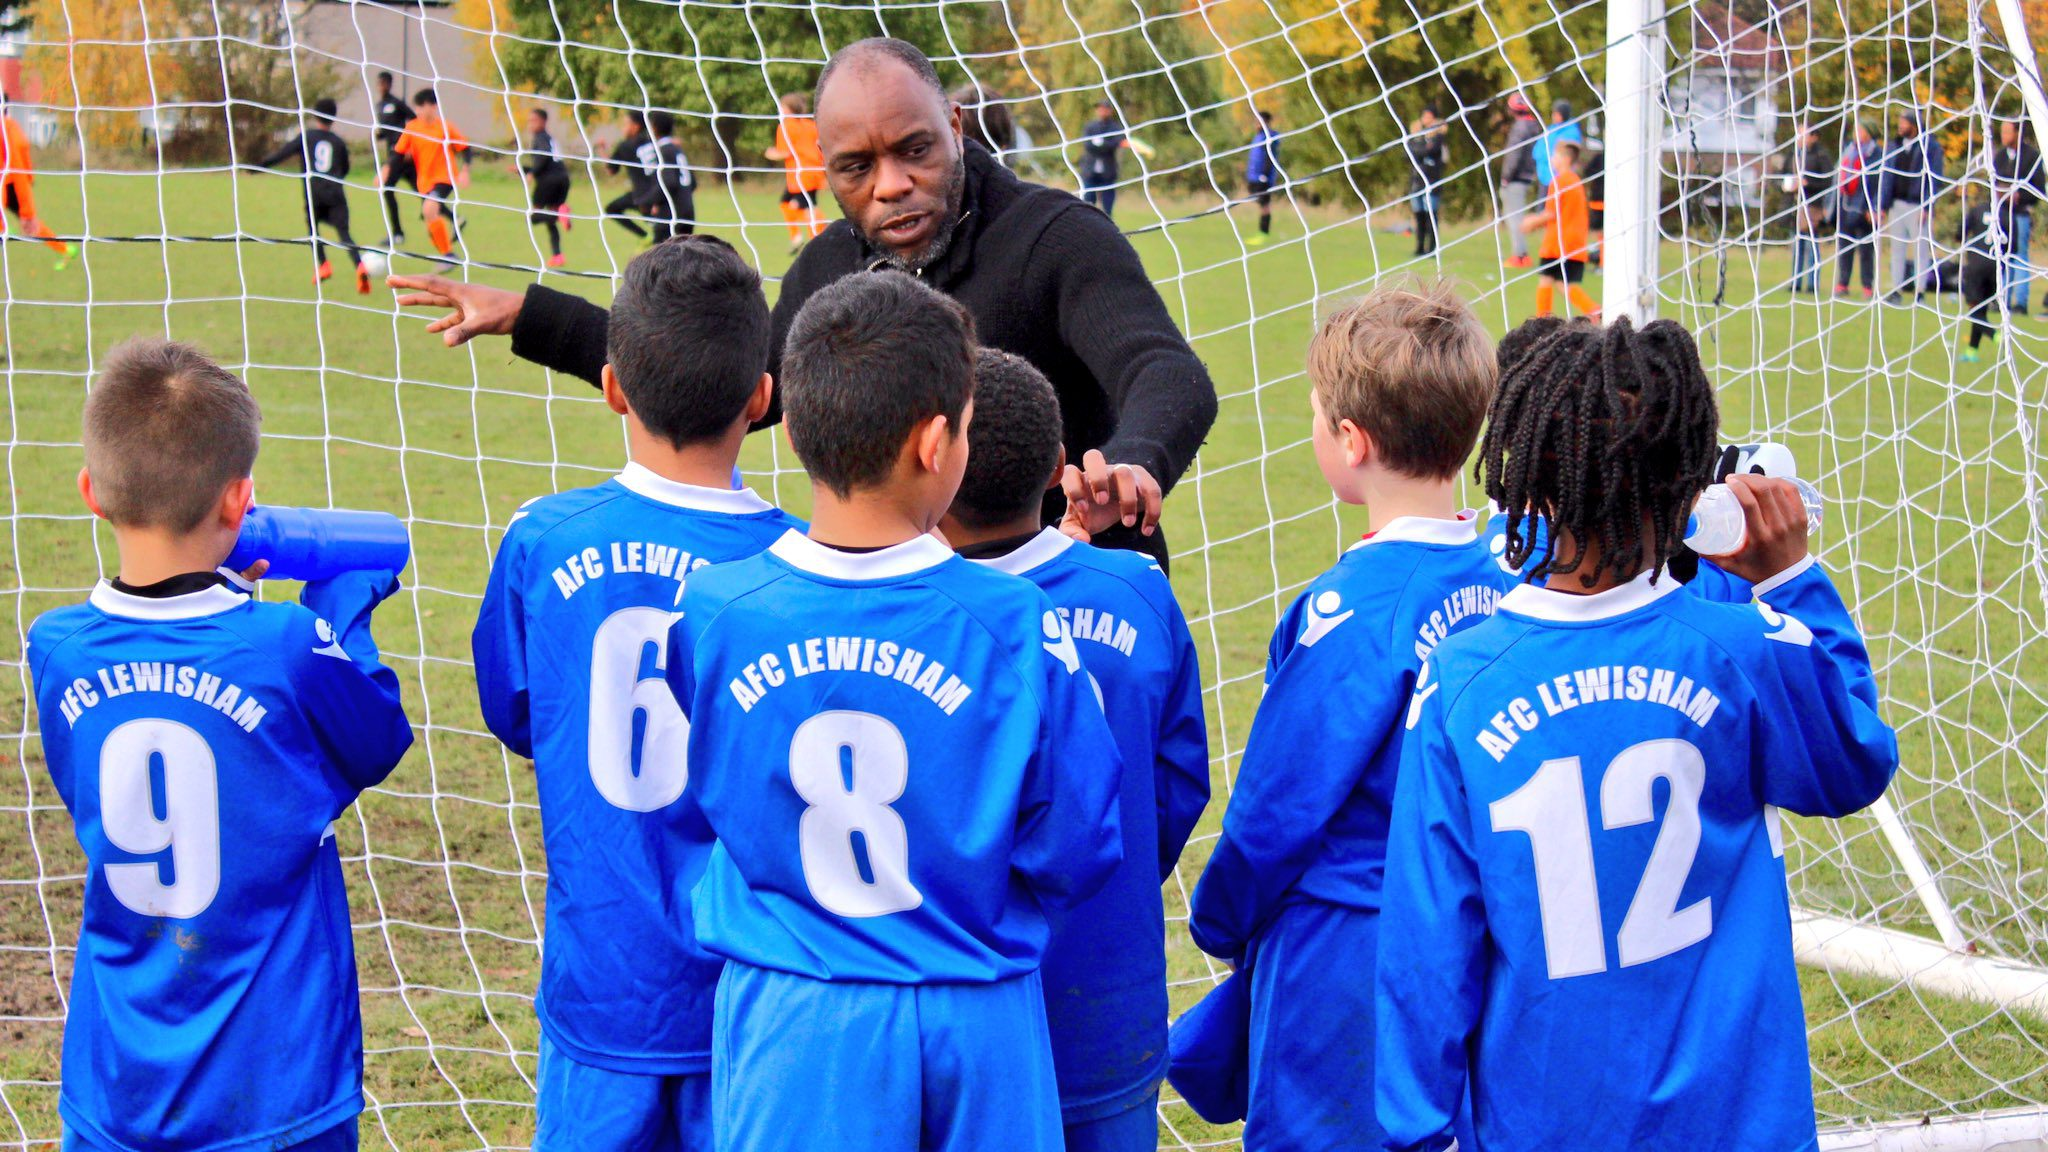 a football coach talks to a group of young players on the pitch